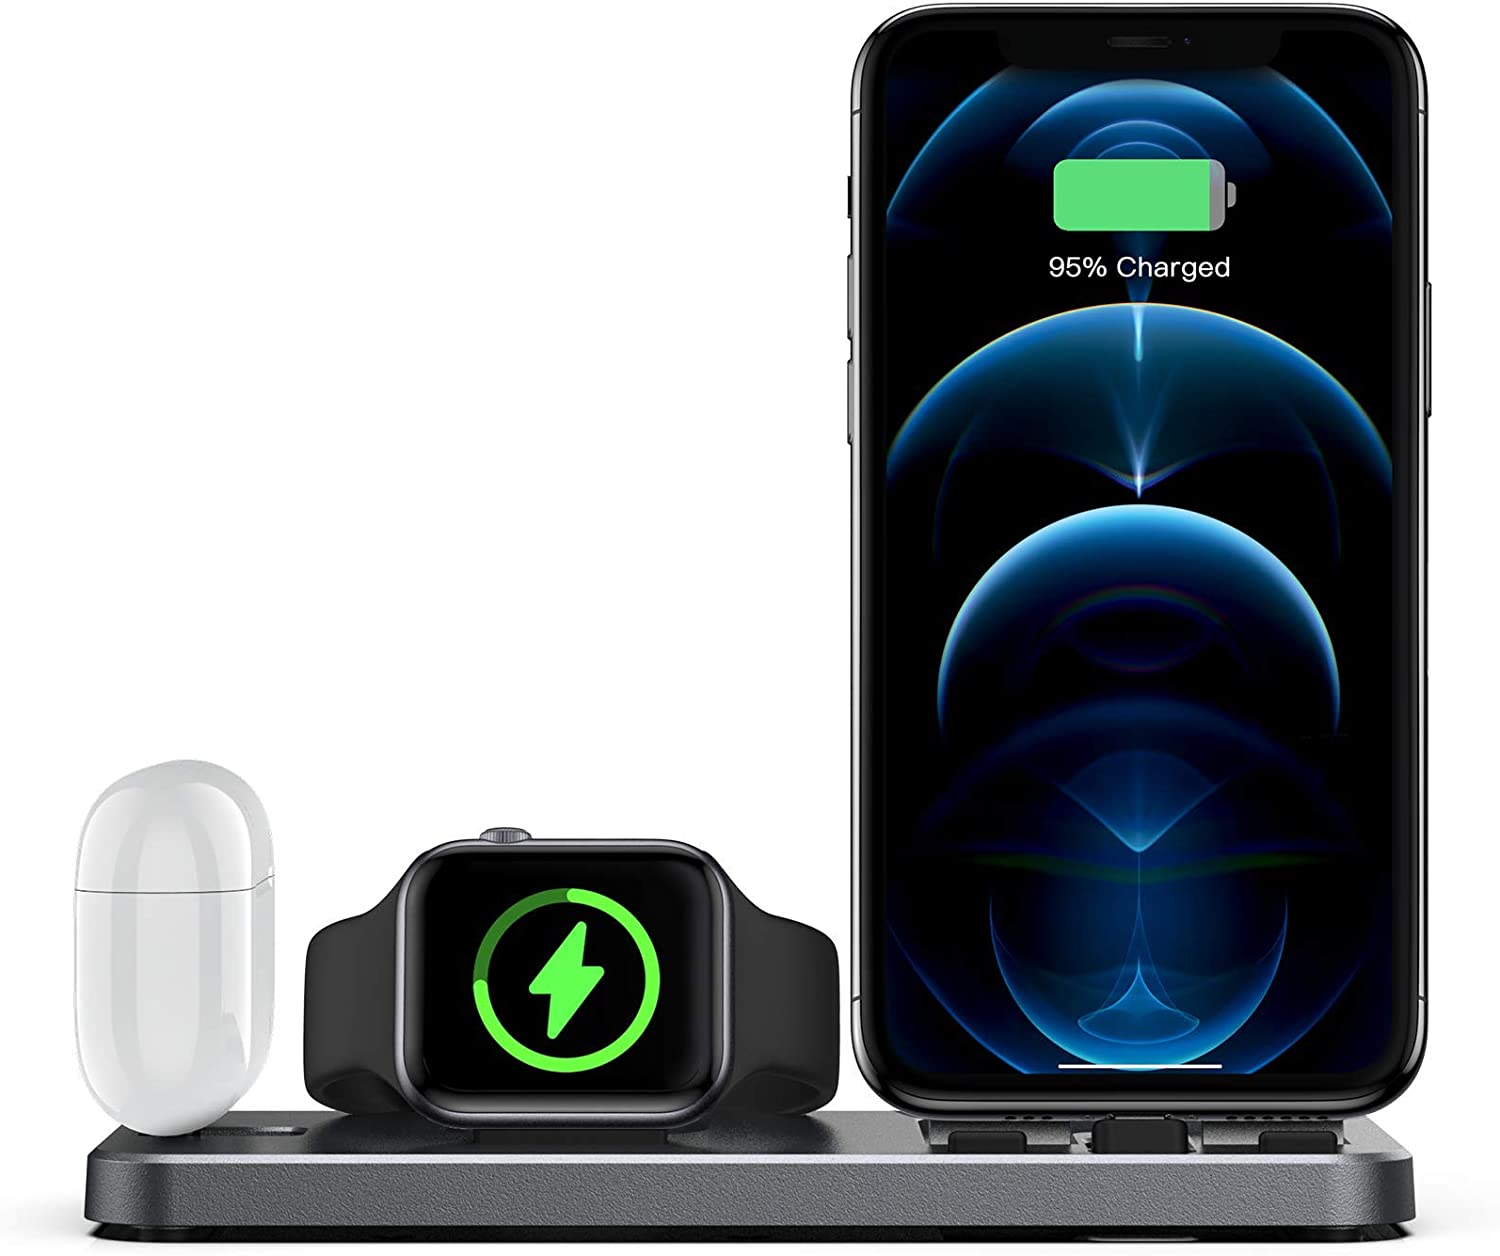 CEREECOO Portable 3 in 1 Charging Station for Apple Products Foldable Charger Stand for iWatch 1/2/3/4/5/6 Mini Charging Stand Compatible with iPhone Airpods pro/1/2 Charging Dock Holder (Space Gray)